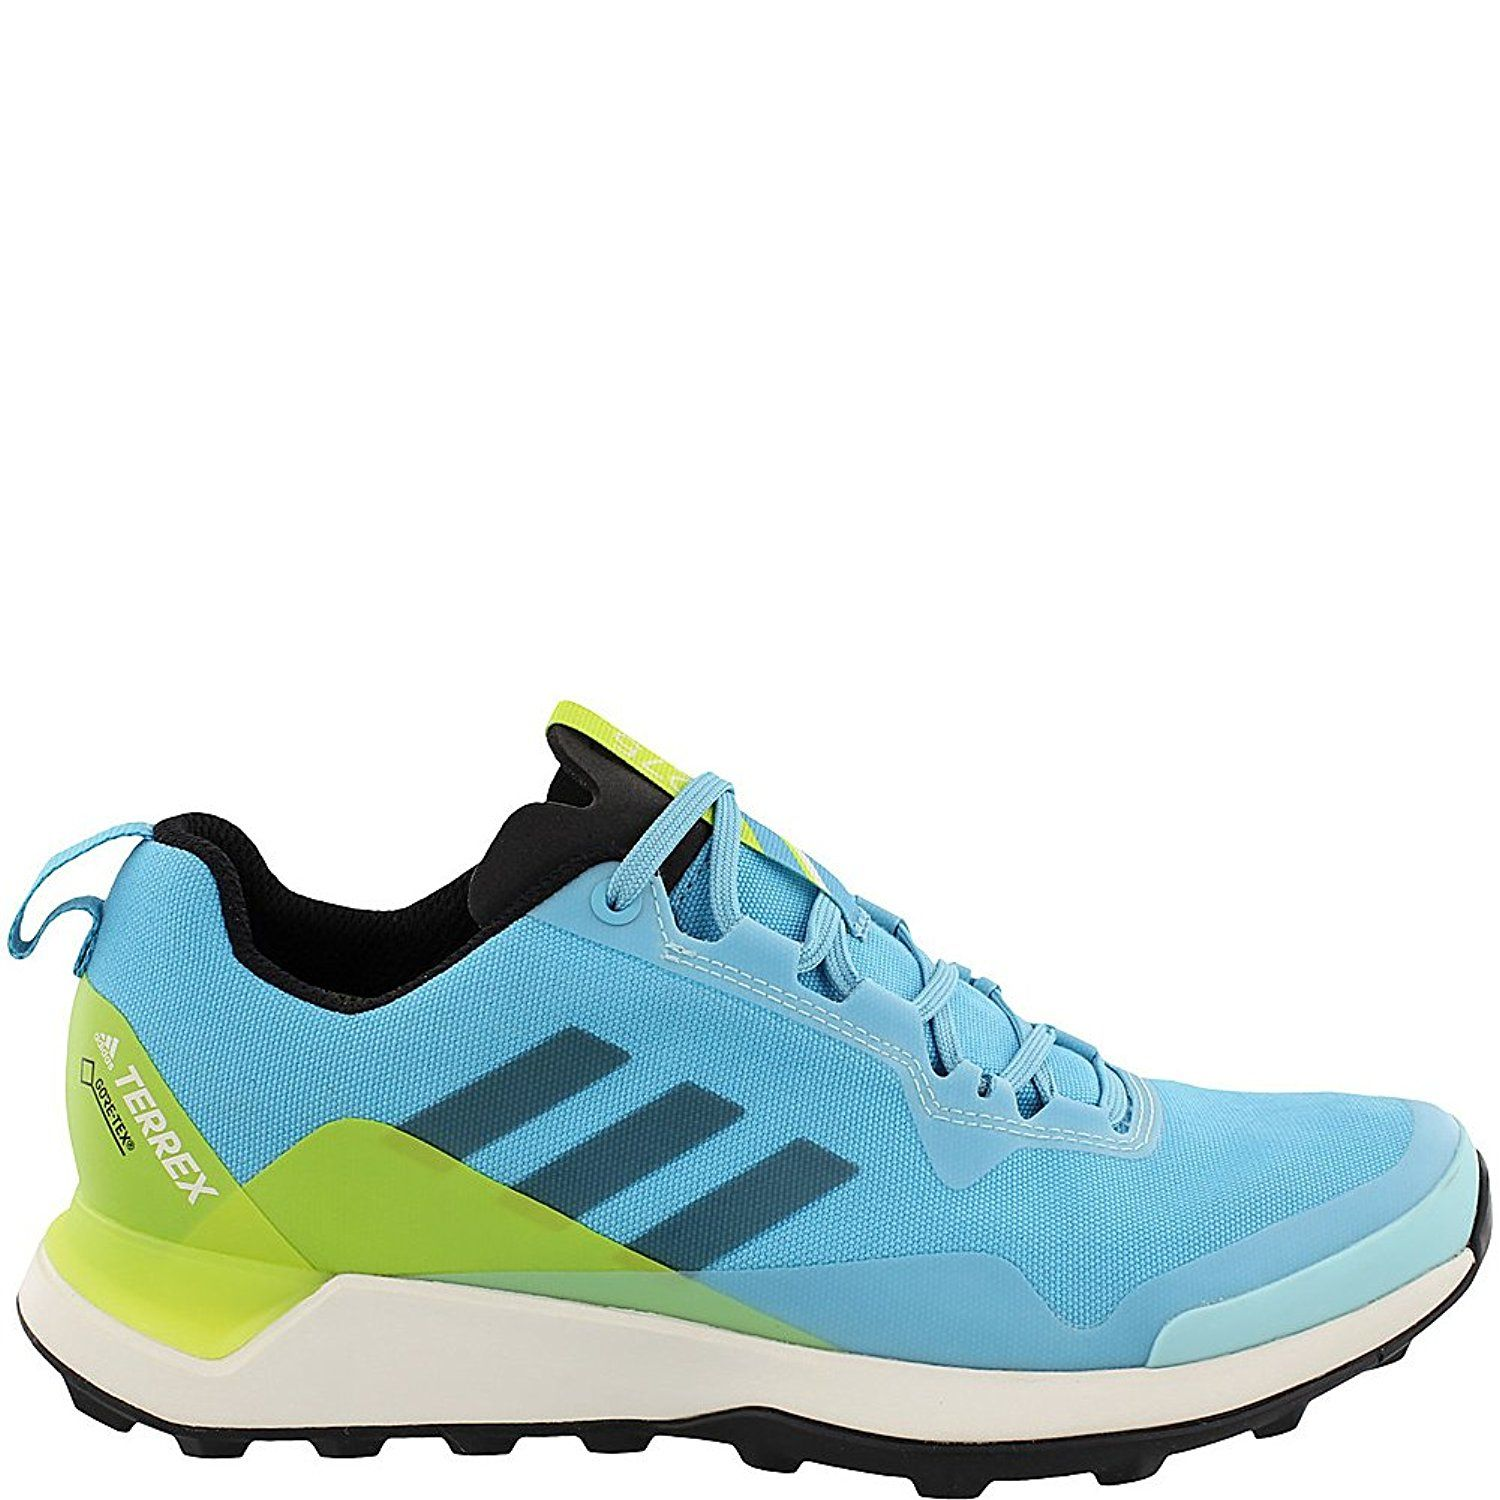 diseño exquisito elige genuino última venta Adidas Sport Performance Women's Terrex CMTK Gore-Tex Trail Sneakers, Grey,  Mesh, Textile, Rubber, 5 M -- Check this awesome… | Hiking shoes, Sneakers,  Adidas sport